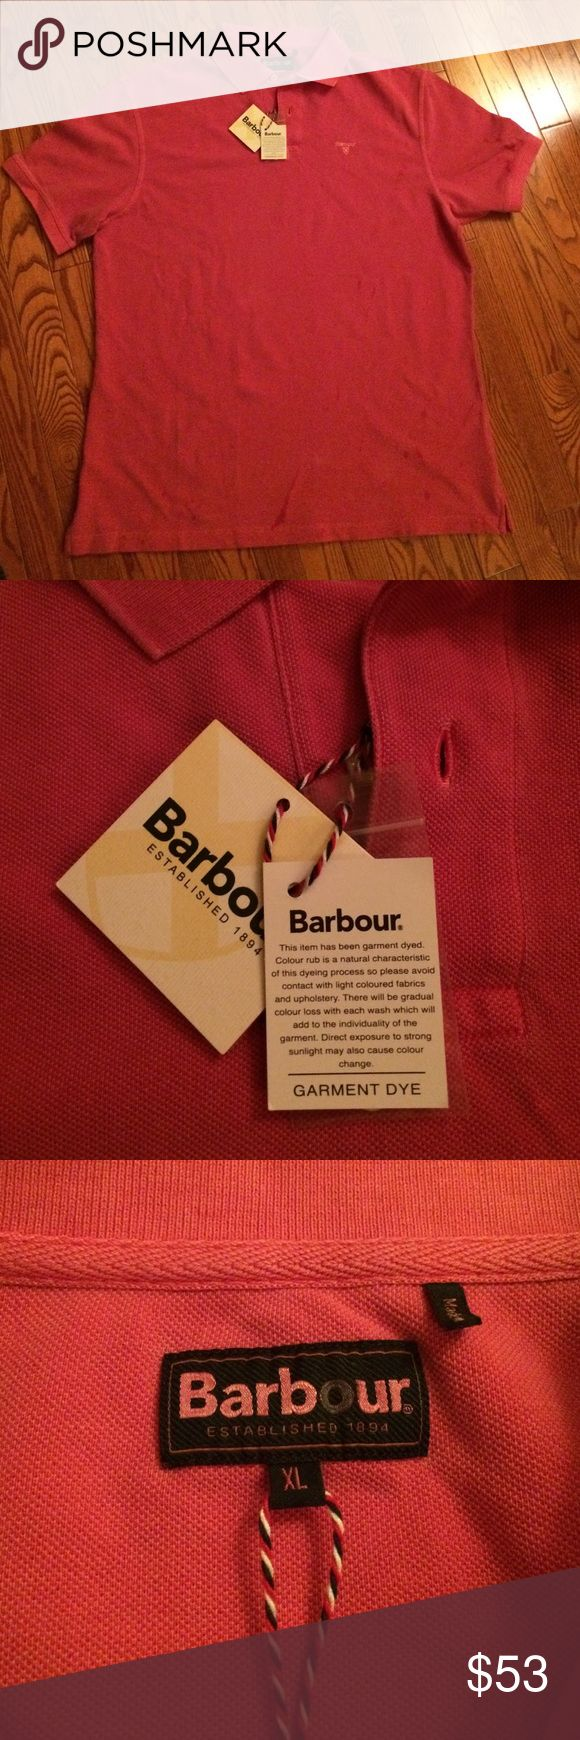 Barbour Men's polo-xlarge. NWT. Brand new fushia washed sports polo. Men's XL. Classic Barbour- smart, casual, and comfortable. Barbour Shirts